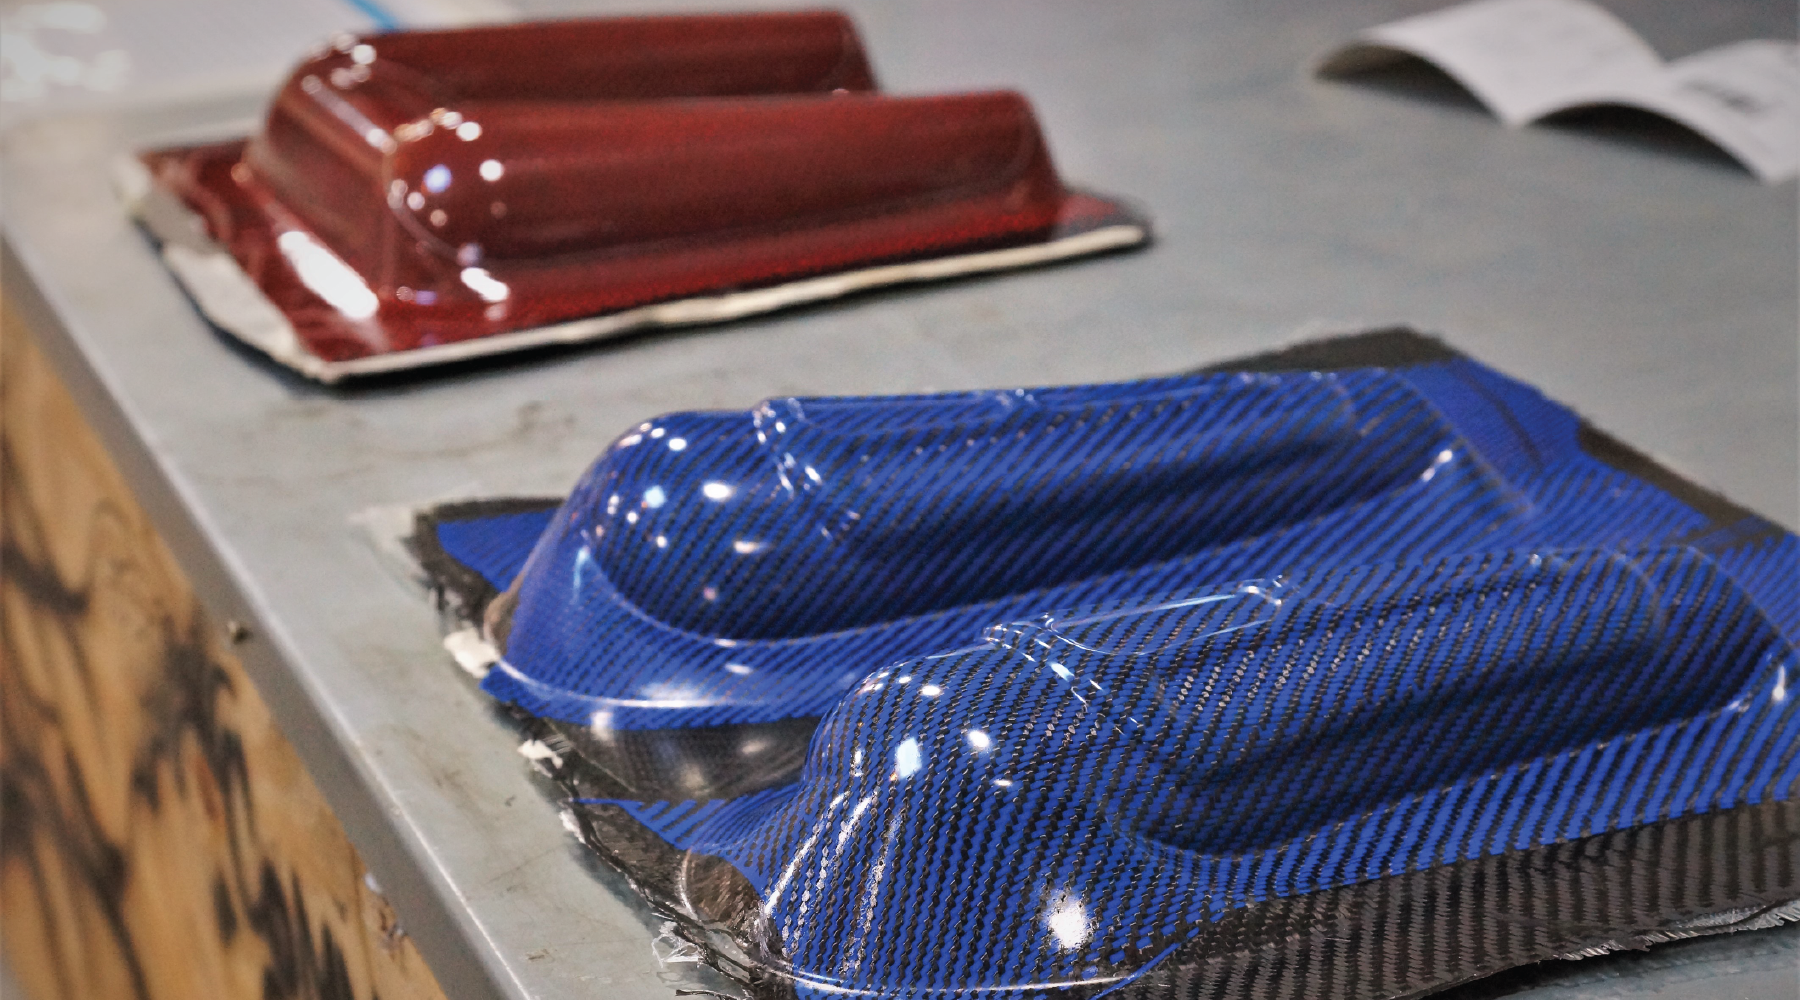 Carbon Fiber and Fiberglass Prototyping Options Available for Fabrication